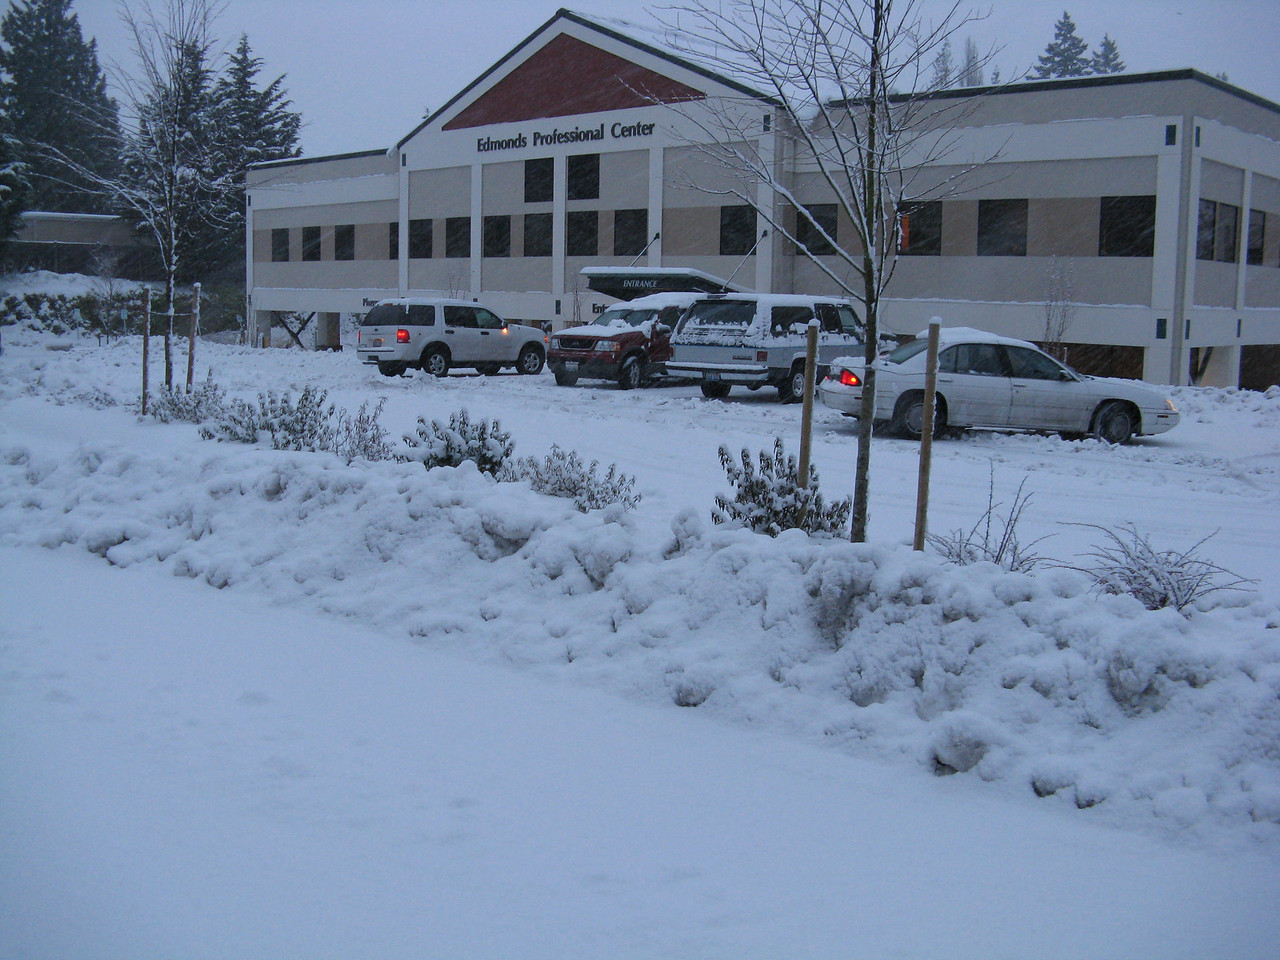 This is the building where Martin has his office, on Christmas Eve day.<br /> <br /> After work, I went to the grocery store.  It was packed with shoppers.  The shelves were nearly empty because supply trucks could not get through the snow.